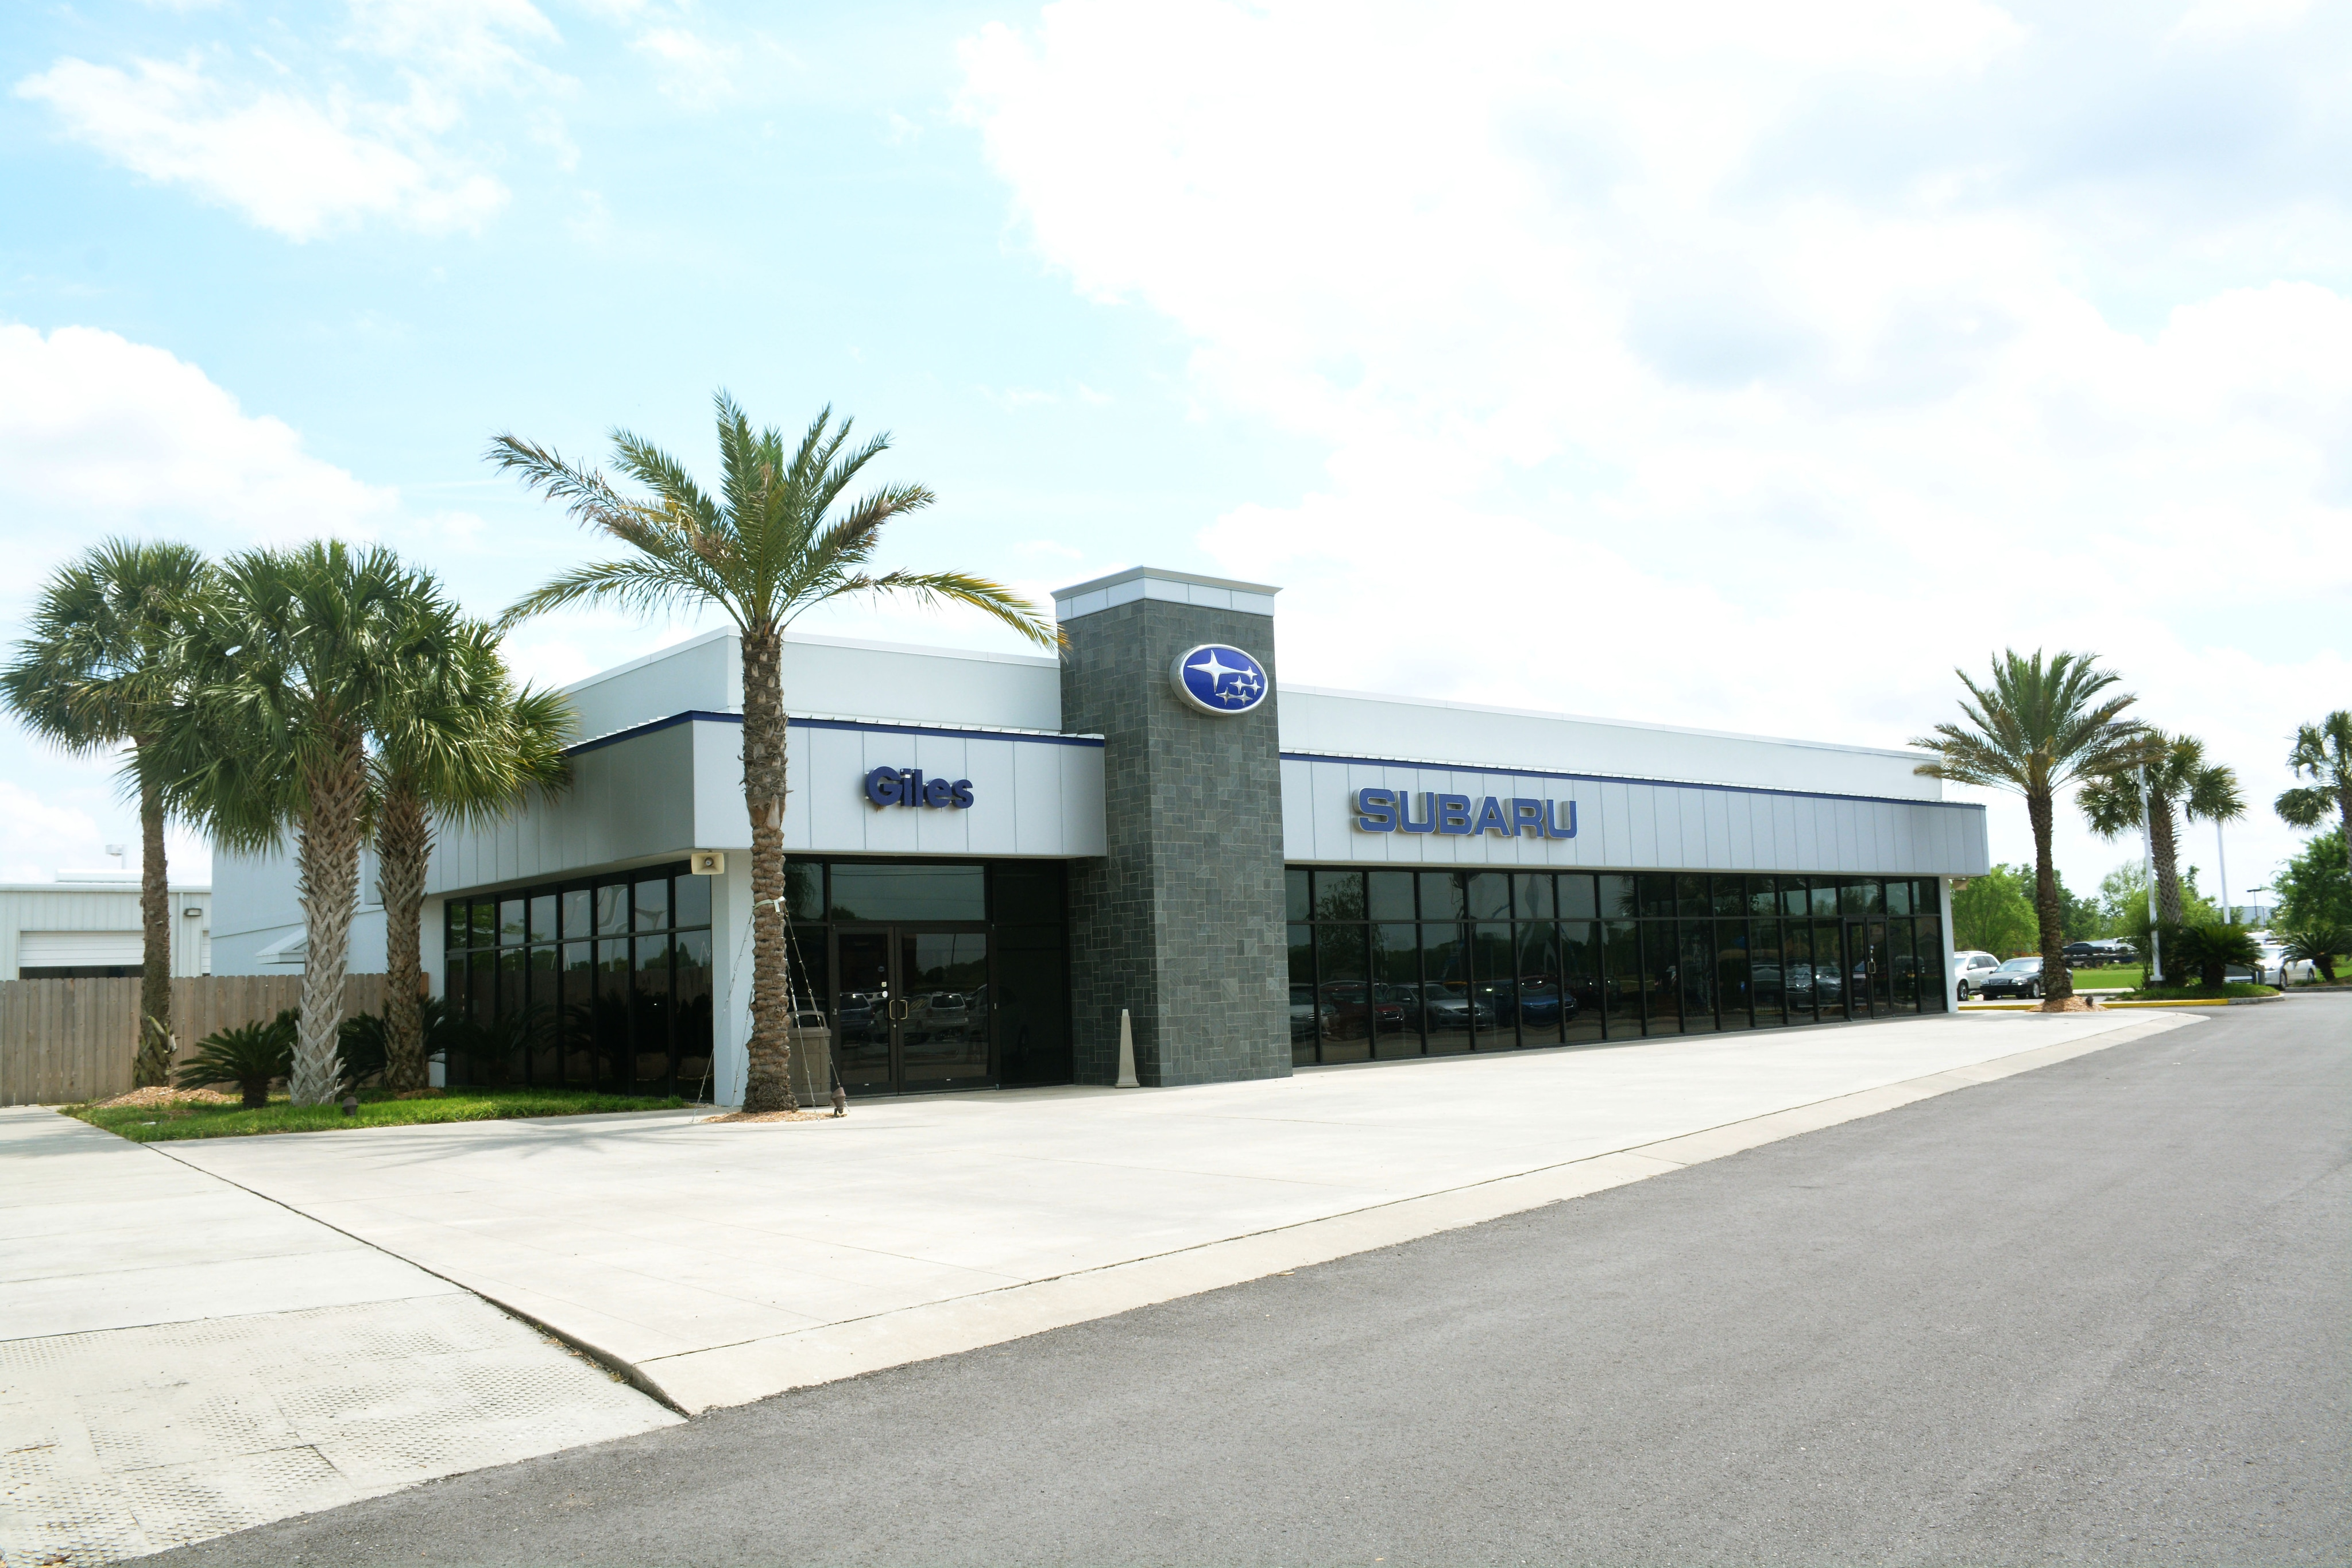 Giles Subaru New And Used Cars Lafayette Dealer 2000 Outback Turbo Quickly Browse Our Car Inventory Or Schedule Auto Service